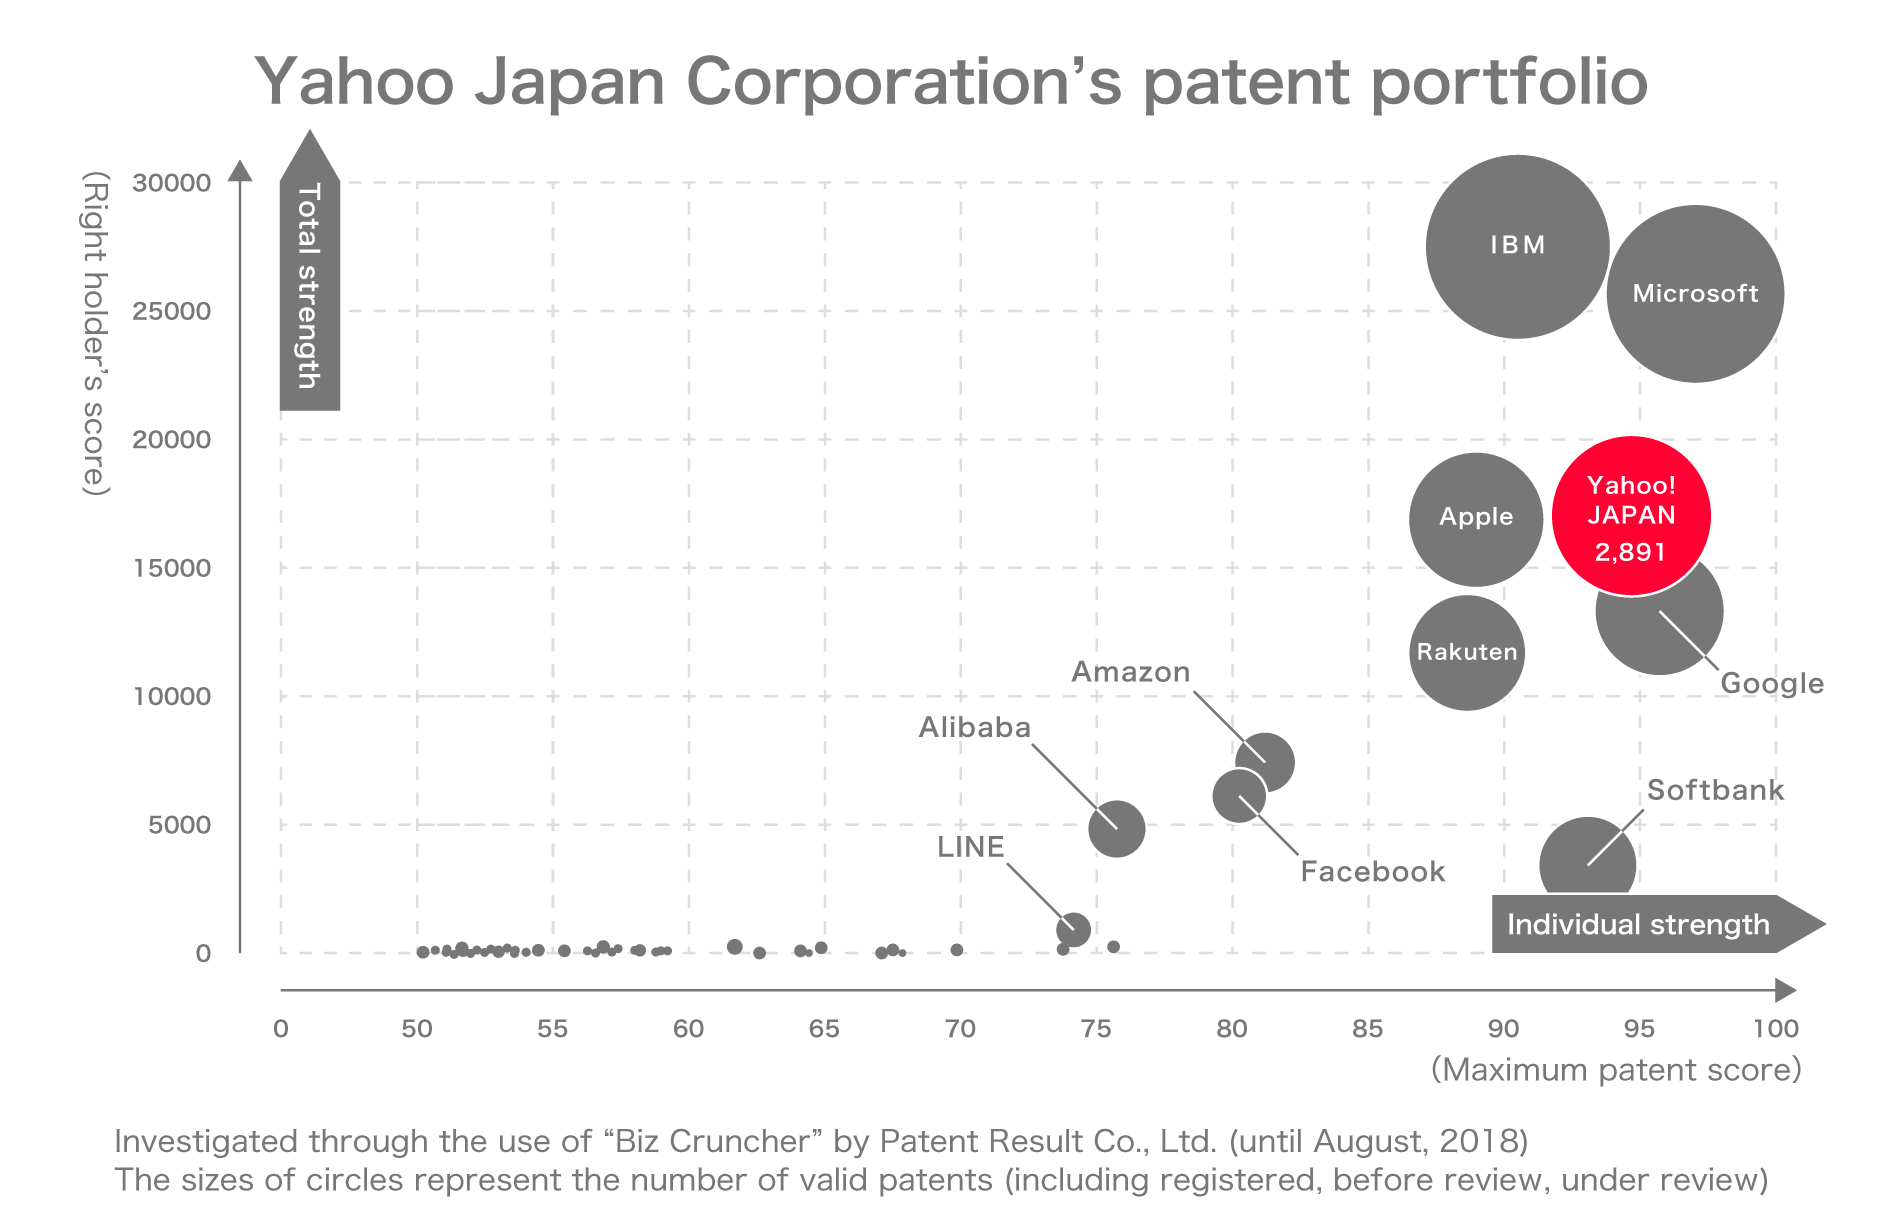 Yahoo Japan Corporation's patent portfolio